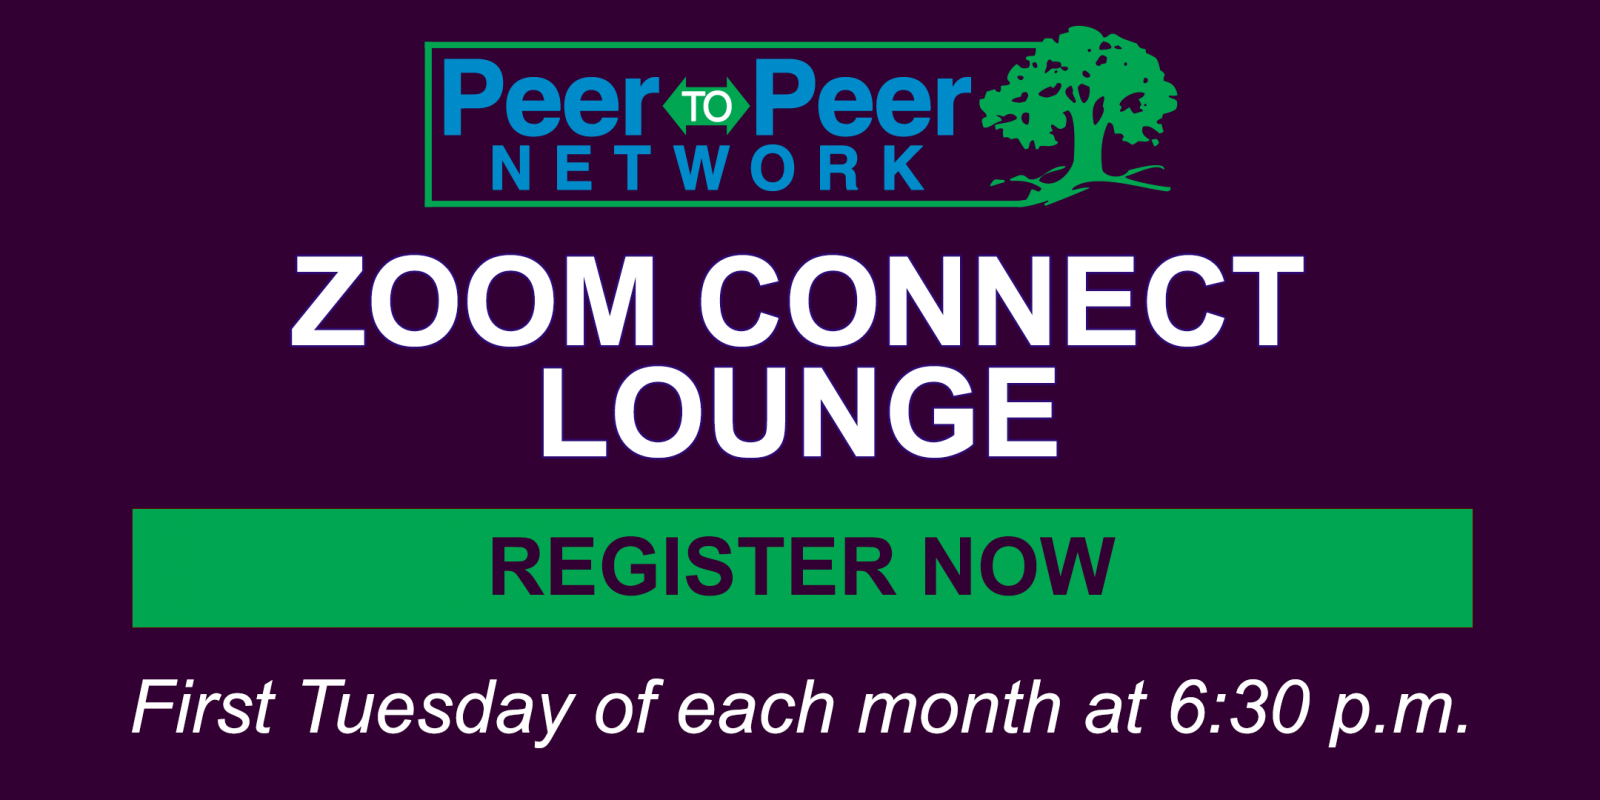 LO Peer to Peer Network Zoom Connect Lounge